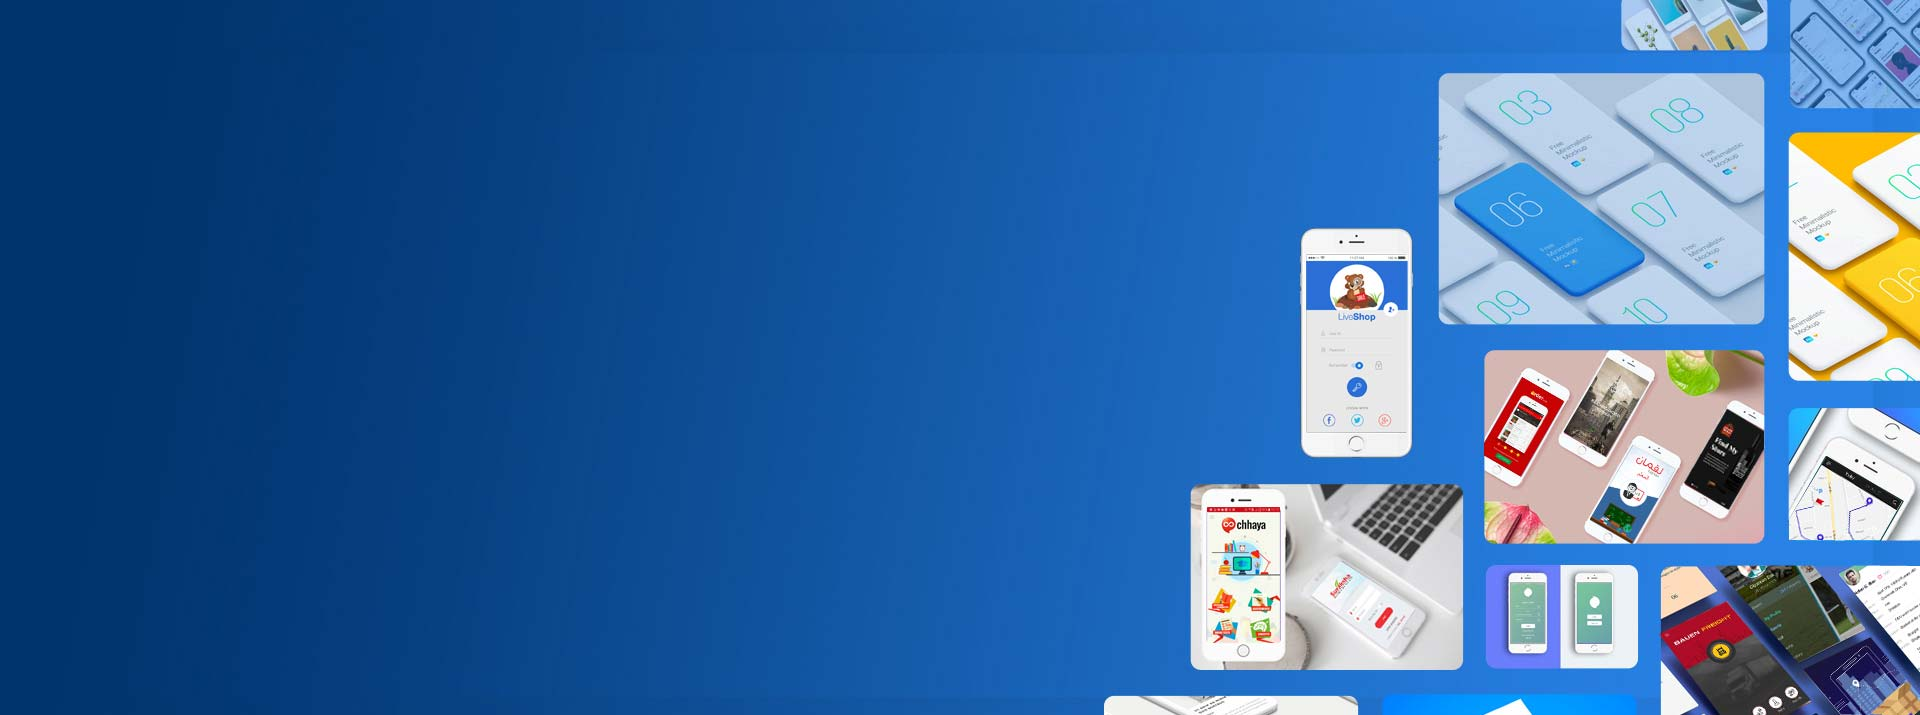 Banner image for Mobile app designs & development services